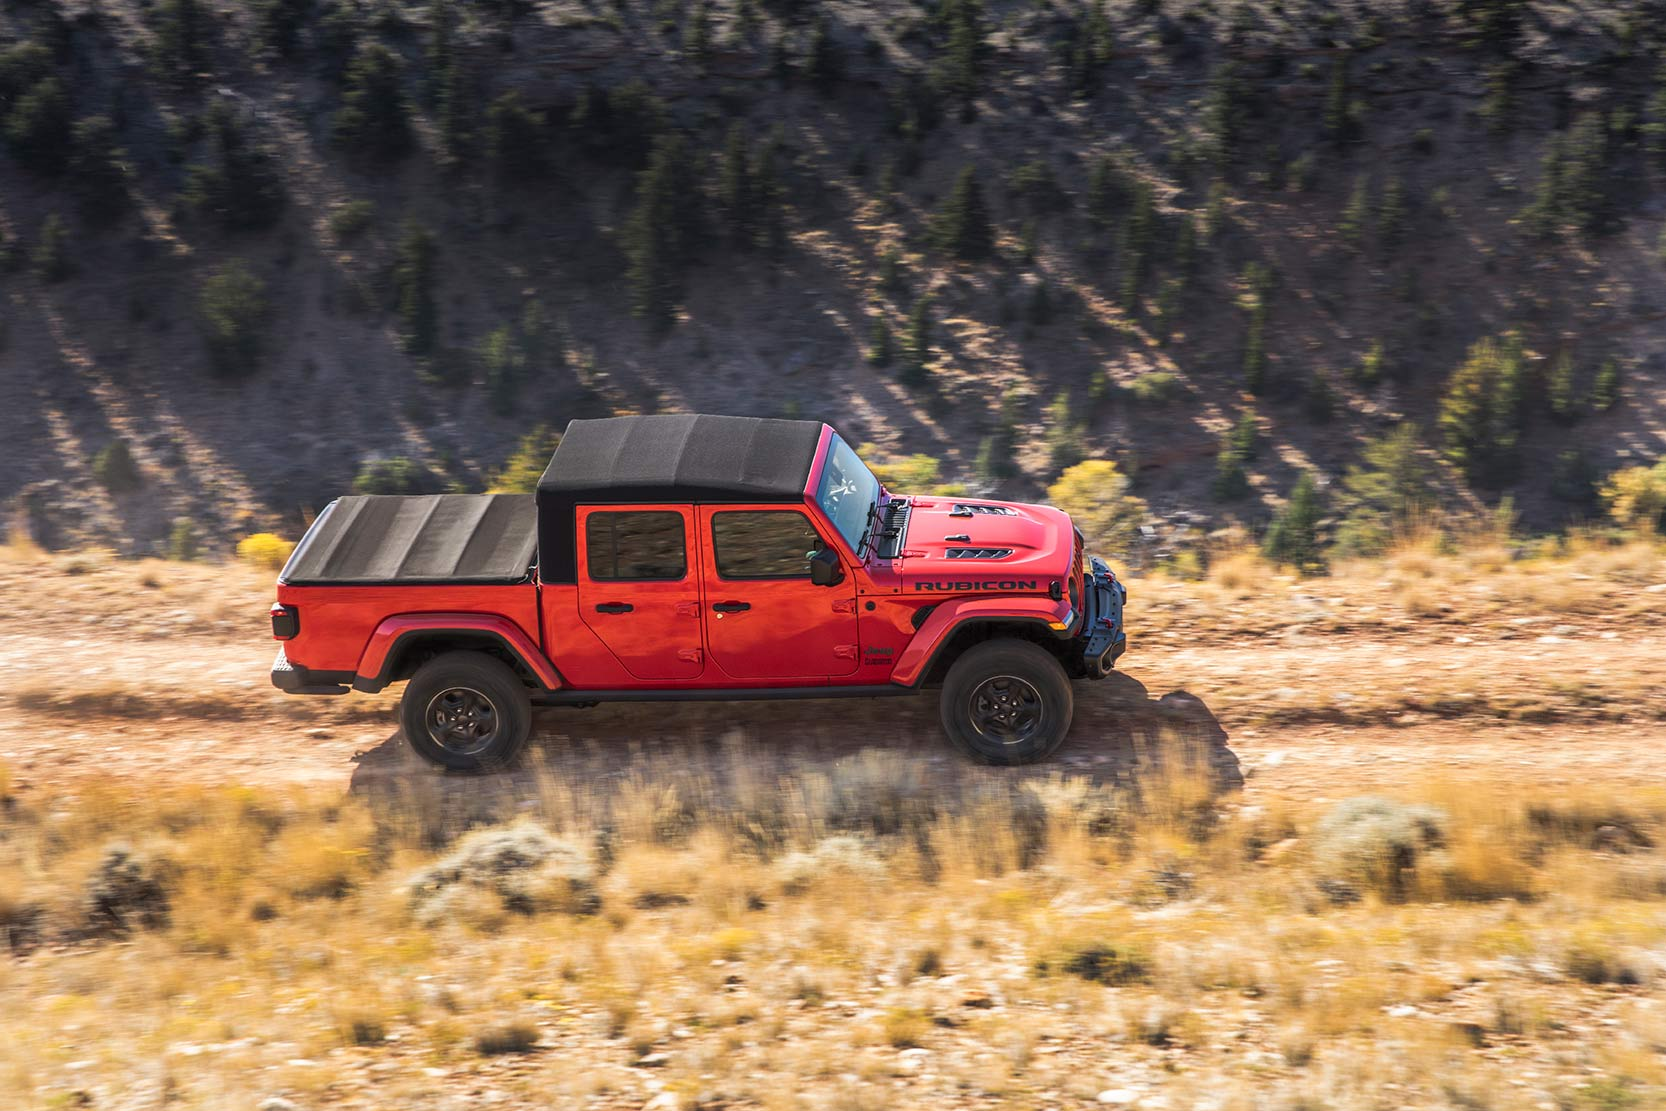 Exterieur_Jeep-Gladiator_47